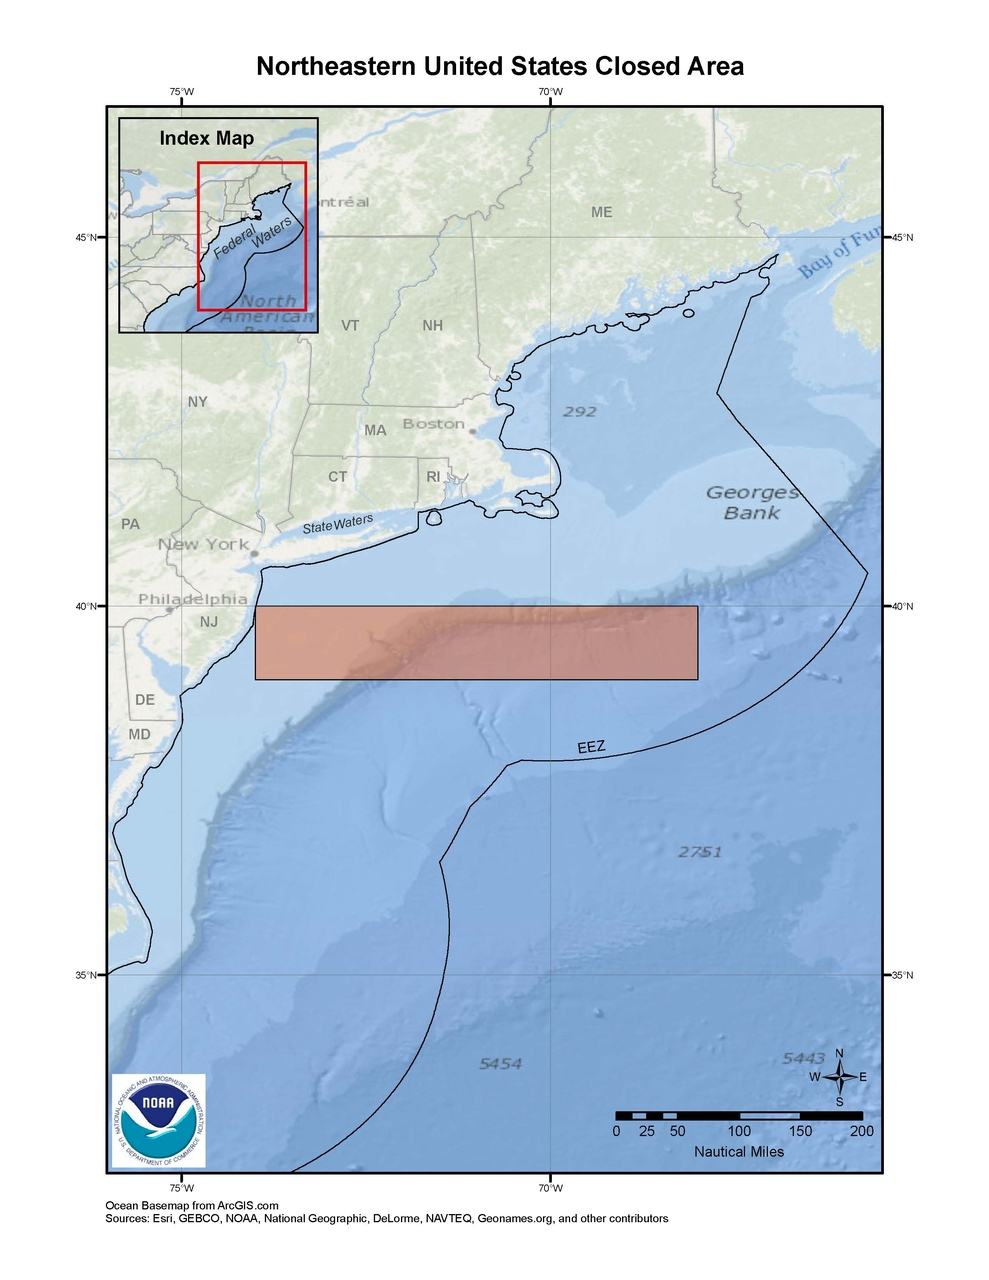 This is a map of the Northeastern United States pelagic longline closed area in the South Atlantic Region.